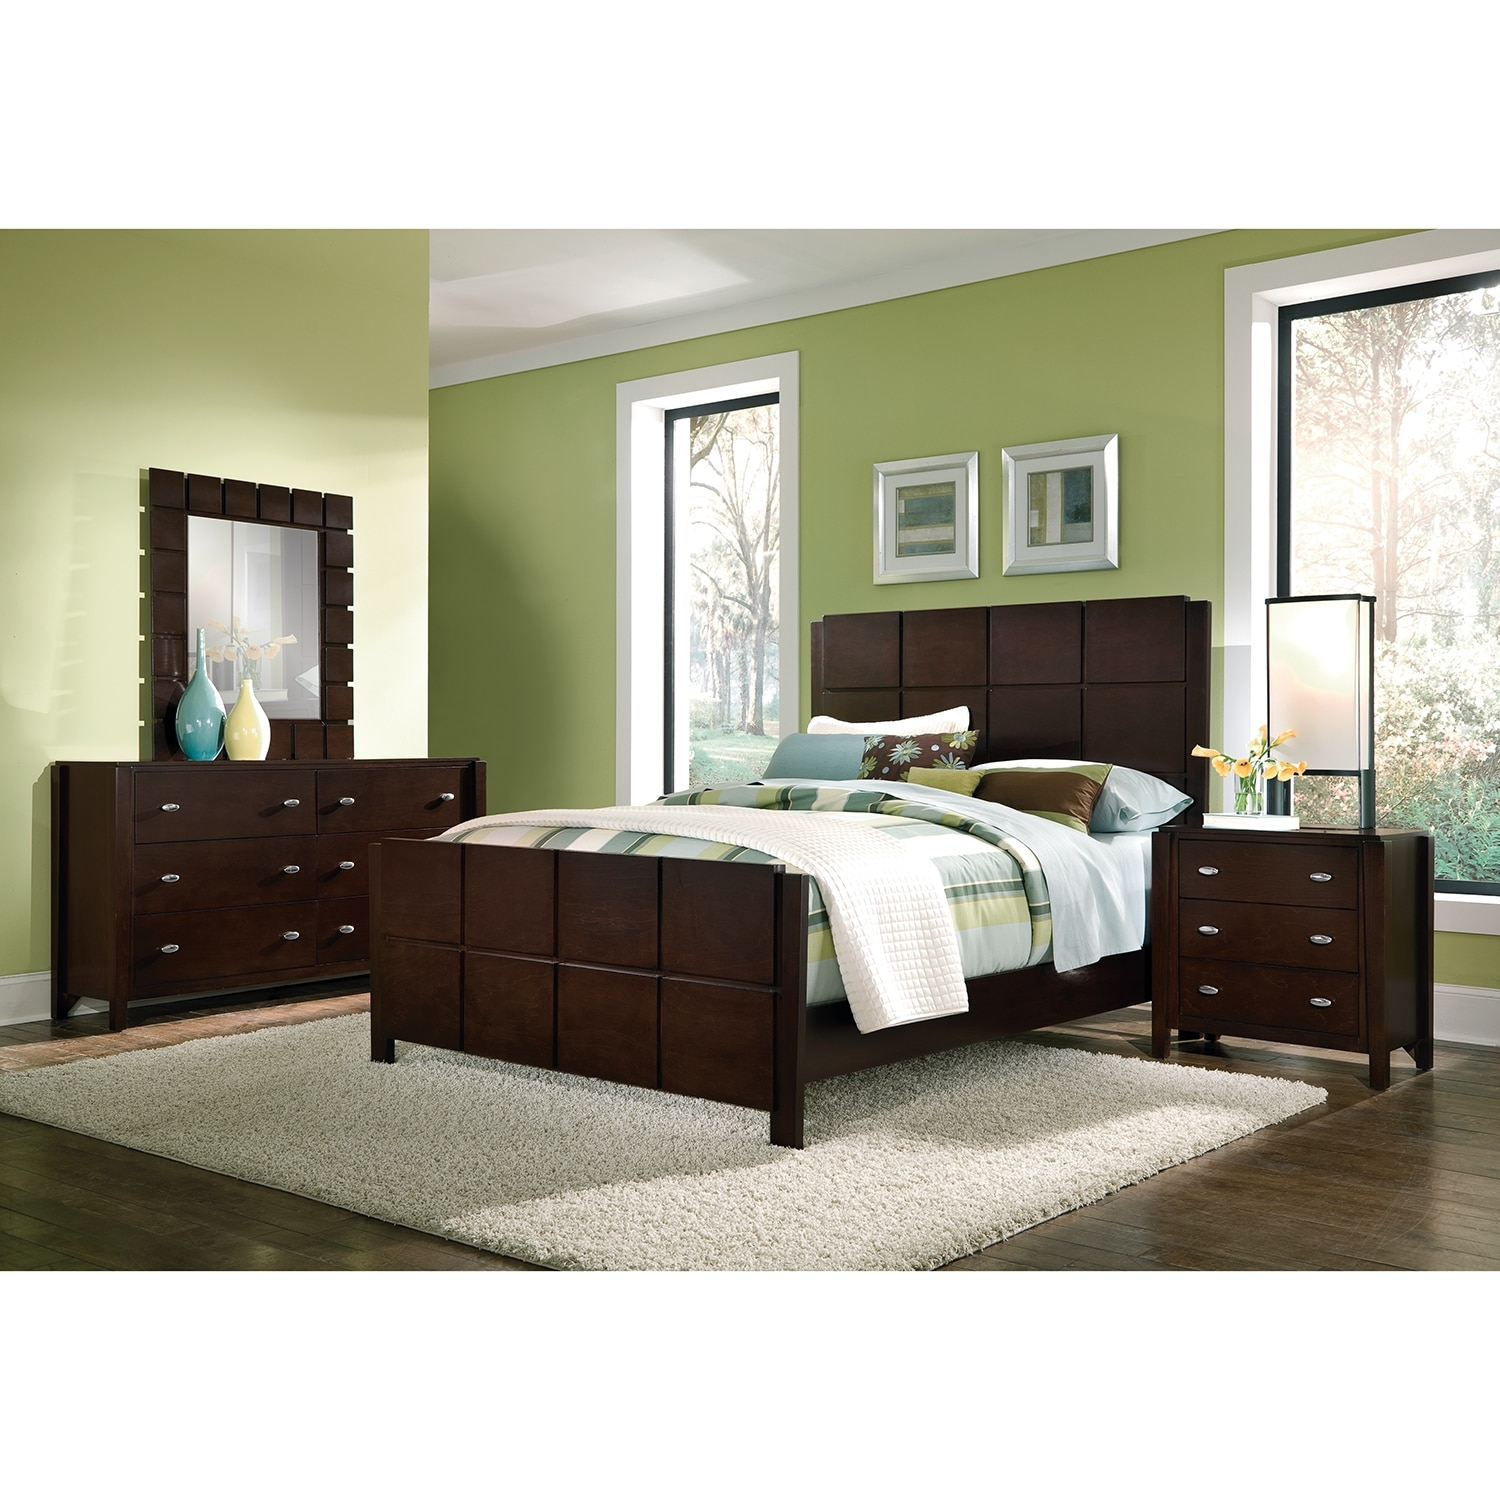 Bedroom Set Furniture ~ Mosaic piece queen bedroom set dark brown value city